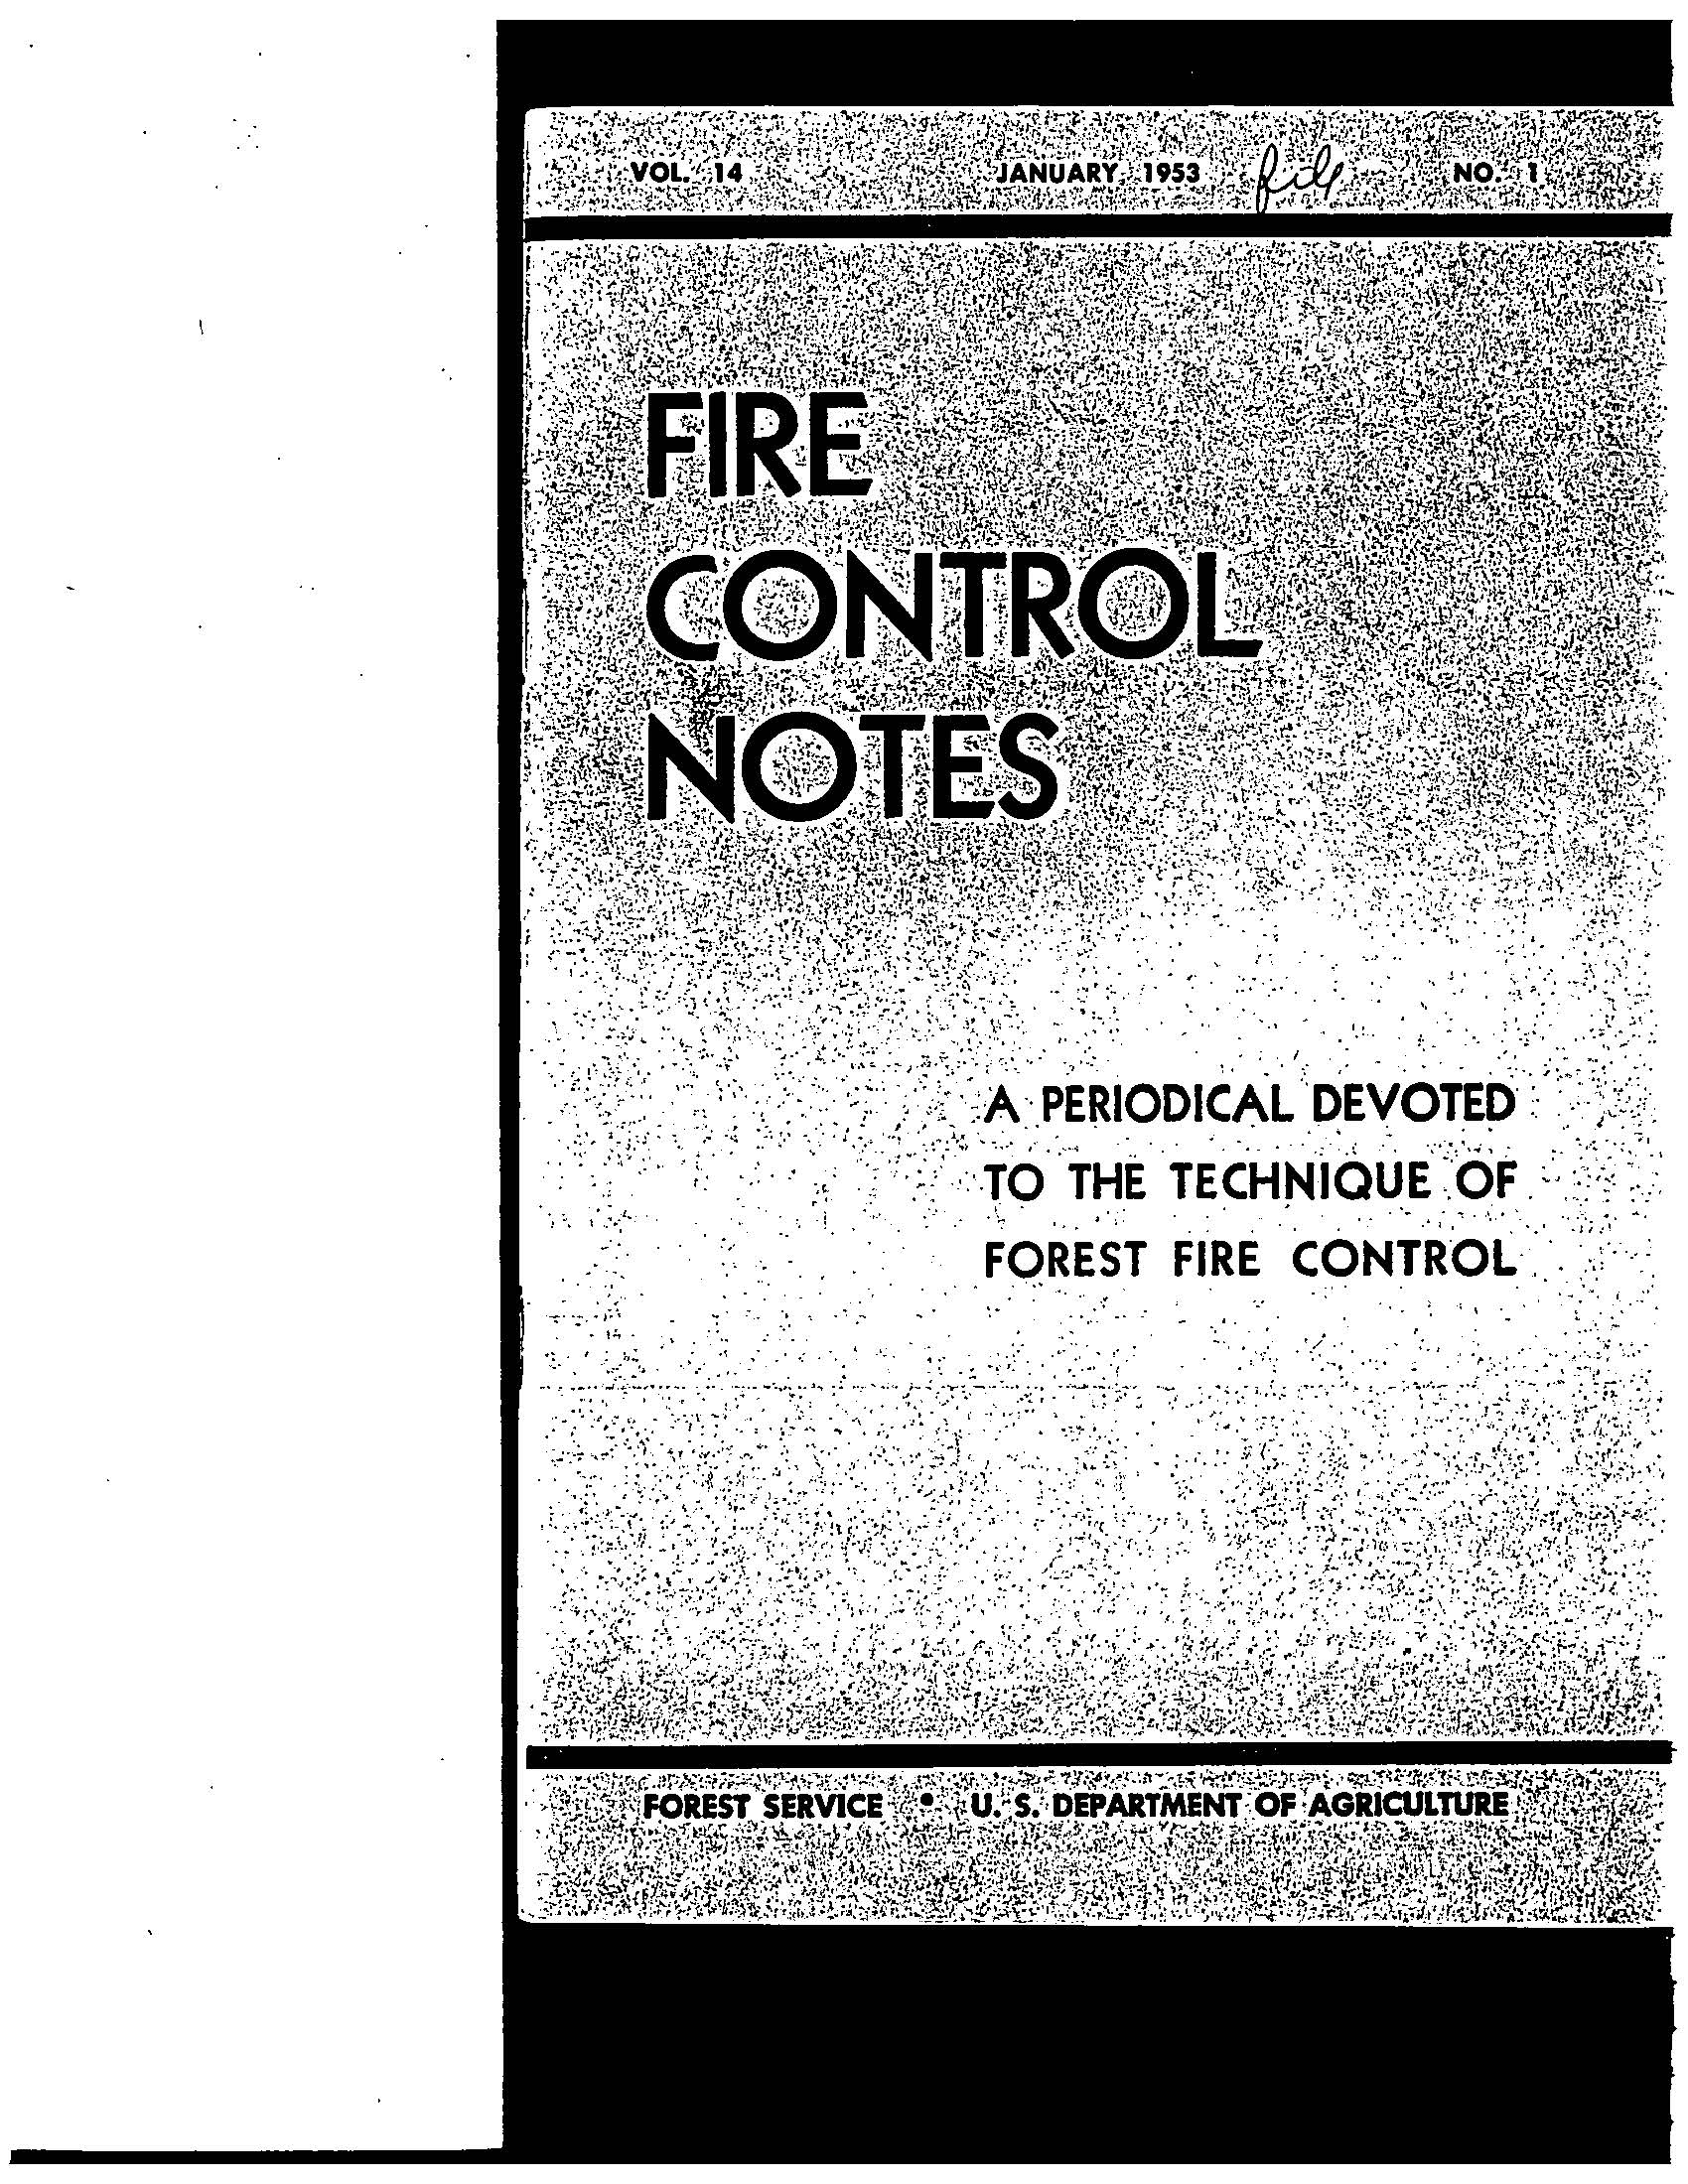 Cover of Fire Management Today Volume 14, Issue 01